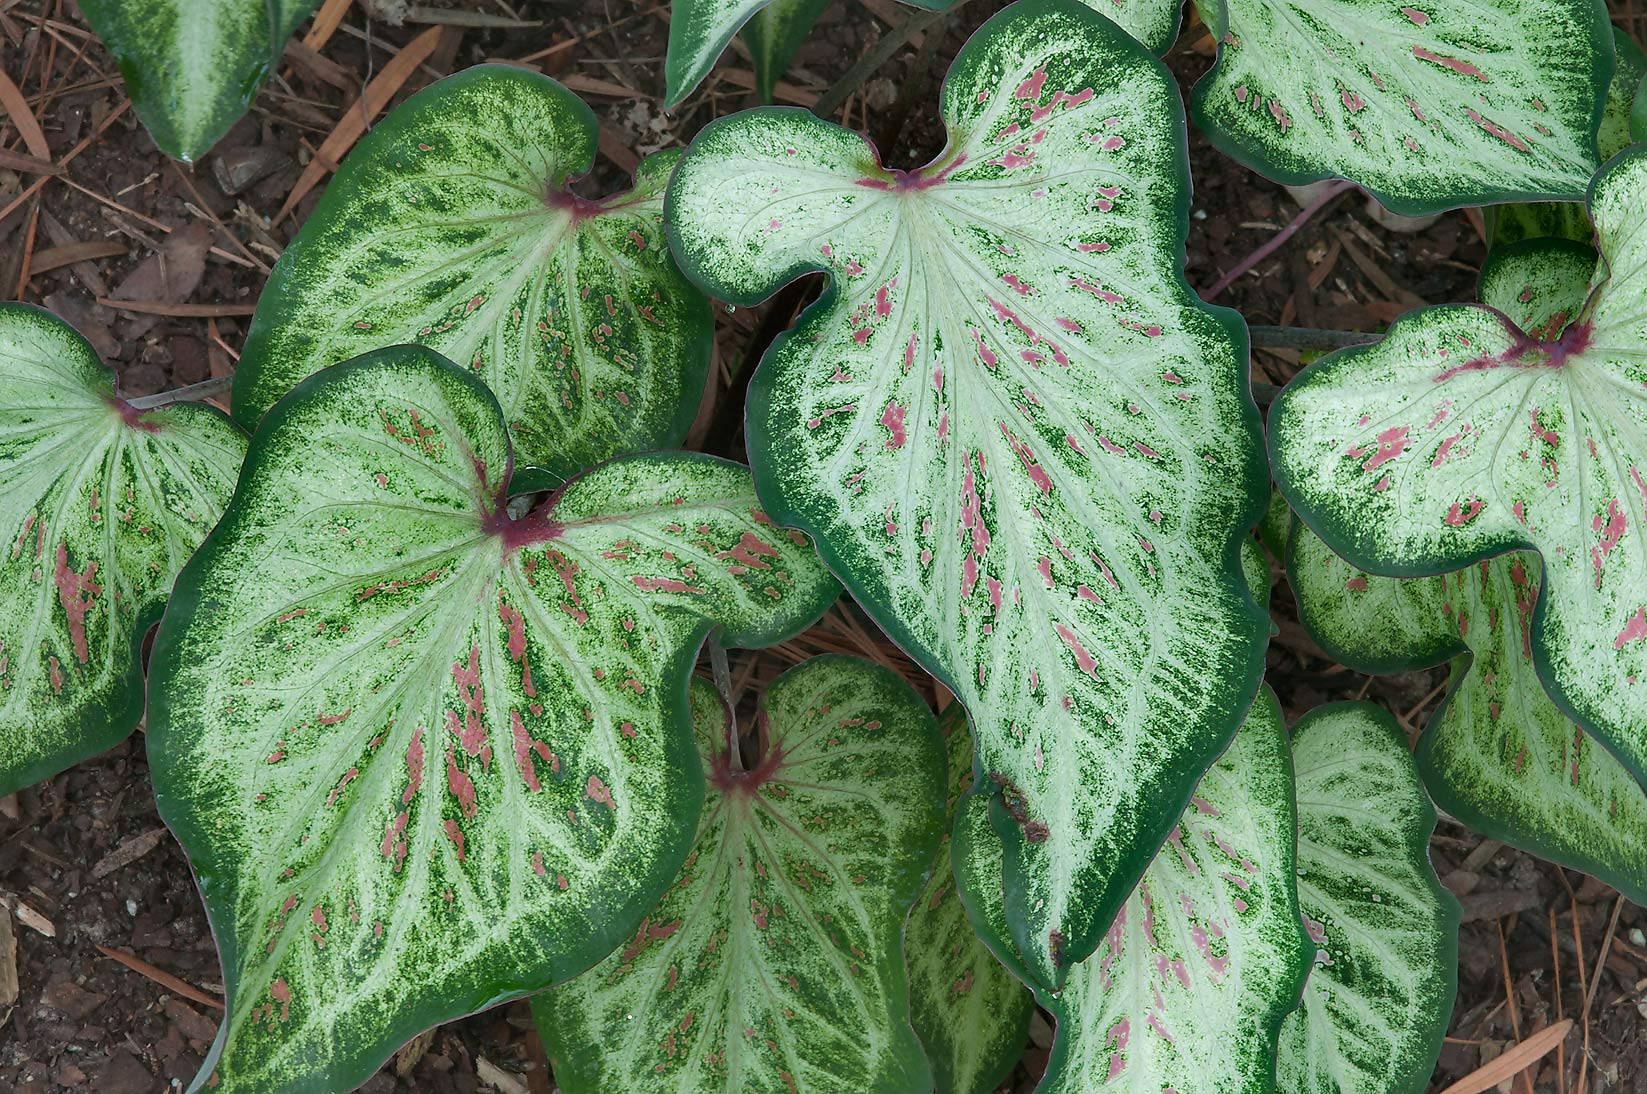 White and green leaves of caladium in Mercer...Gardens. Humble (Houston area), Texas